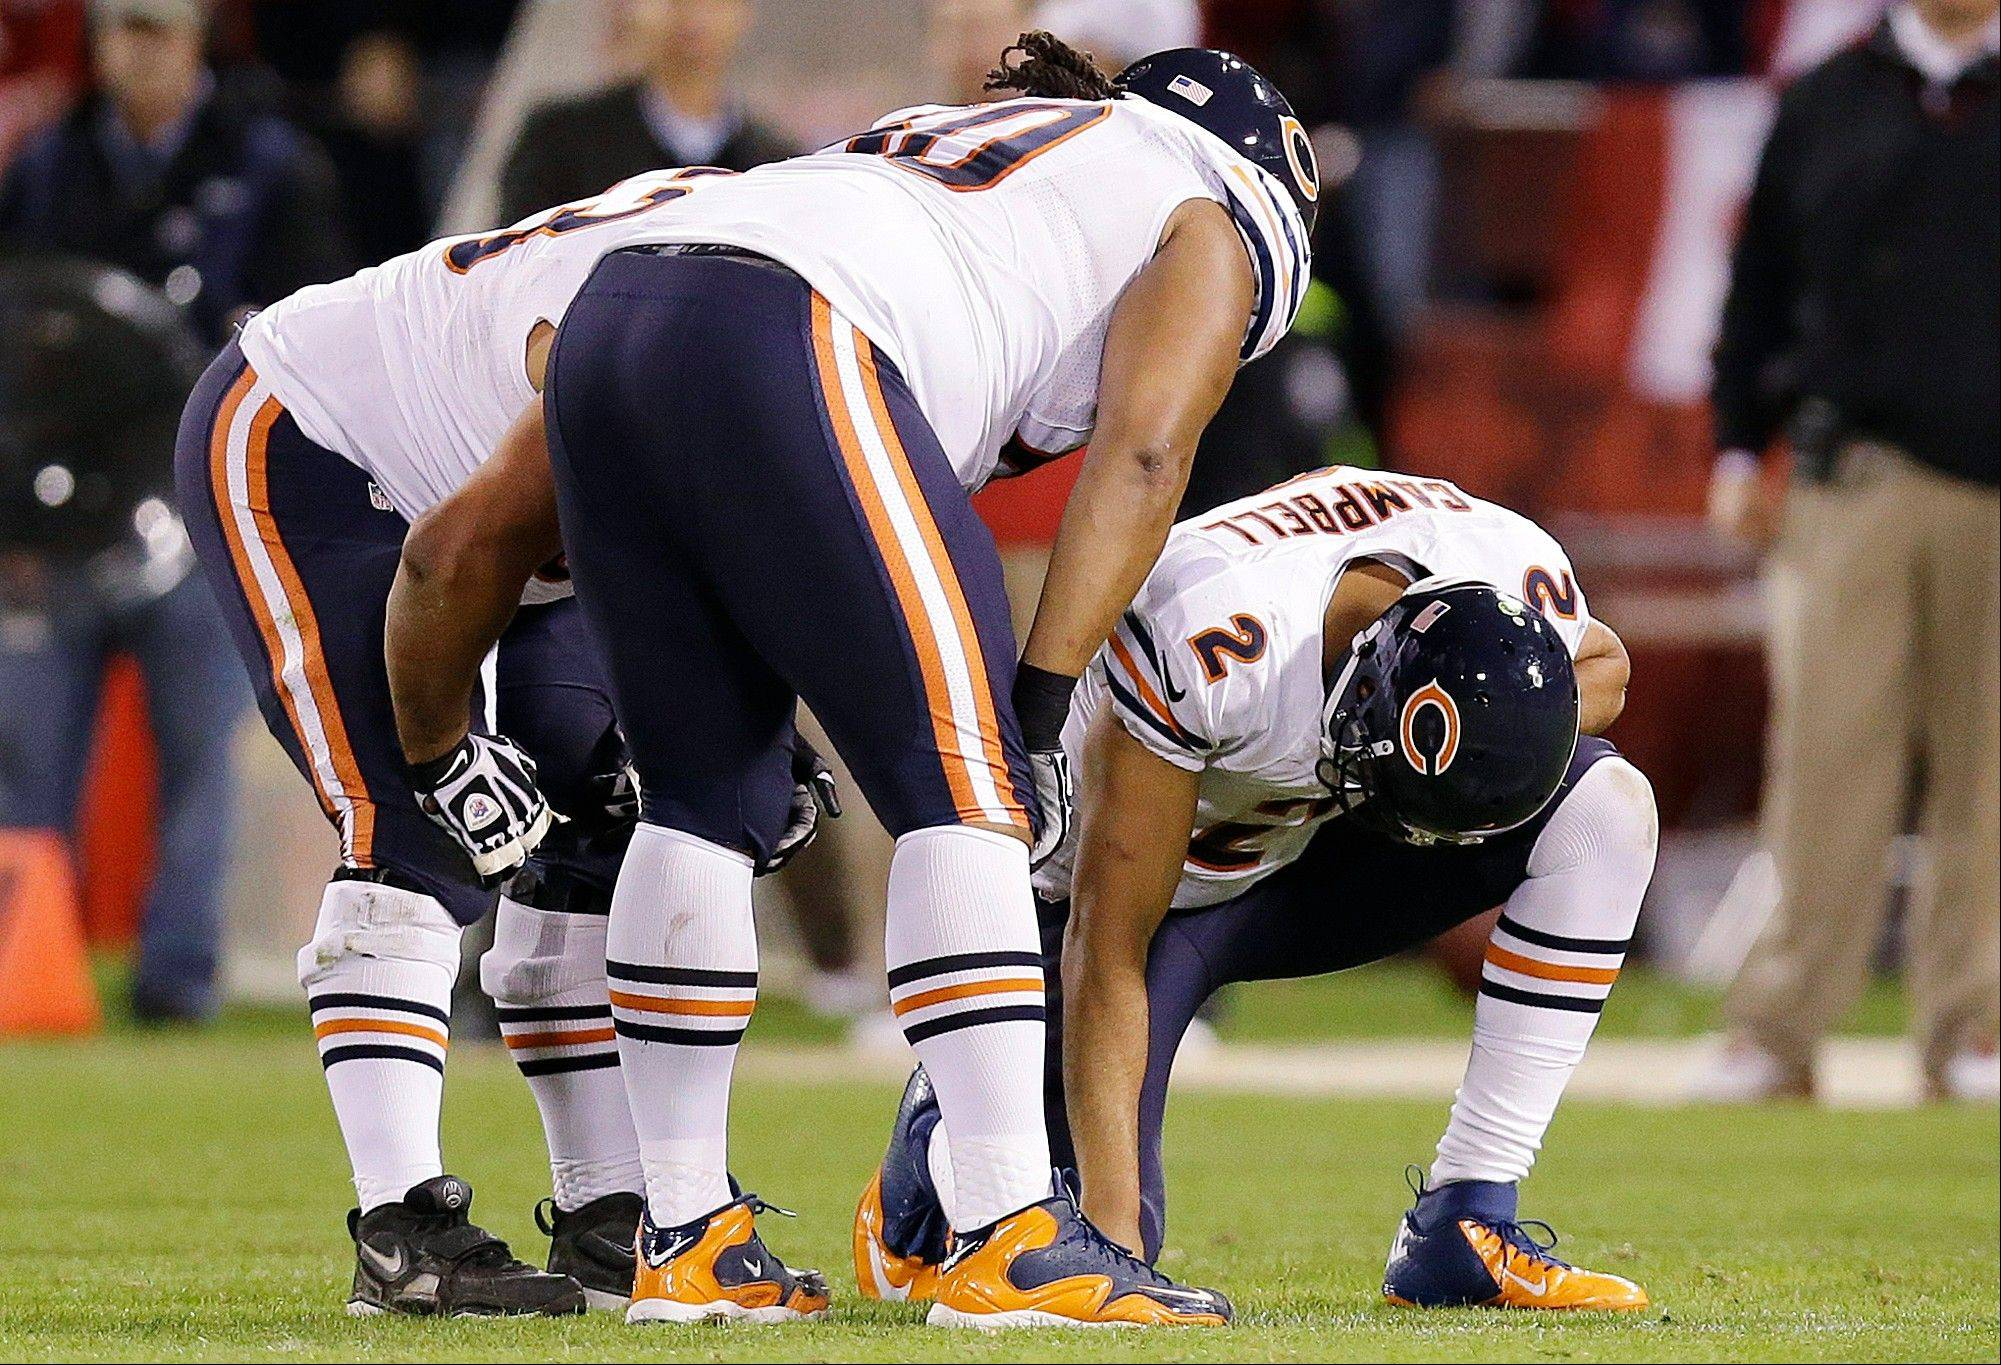 Chicago Bears quarterback Jason Campbell is looked over by teammates after being tackled during the second half.